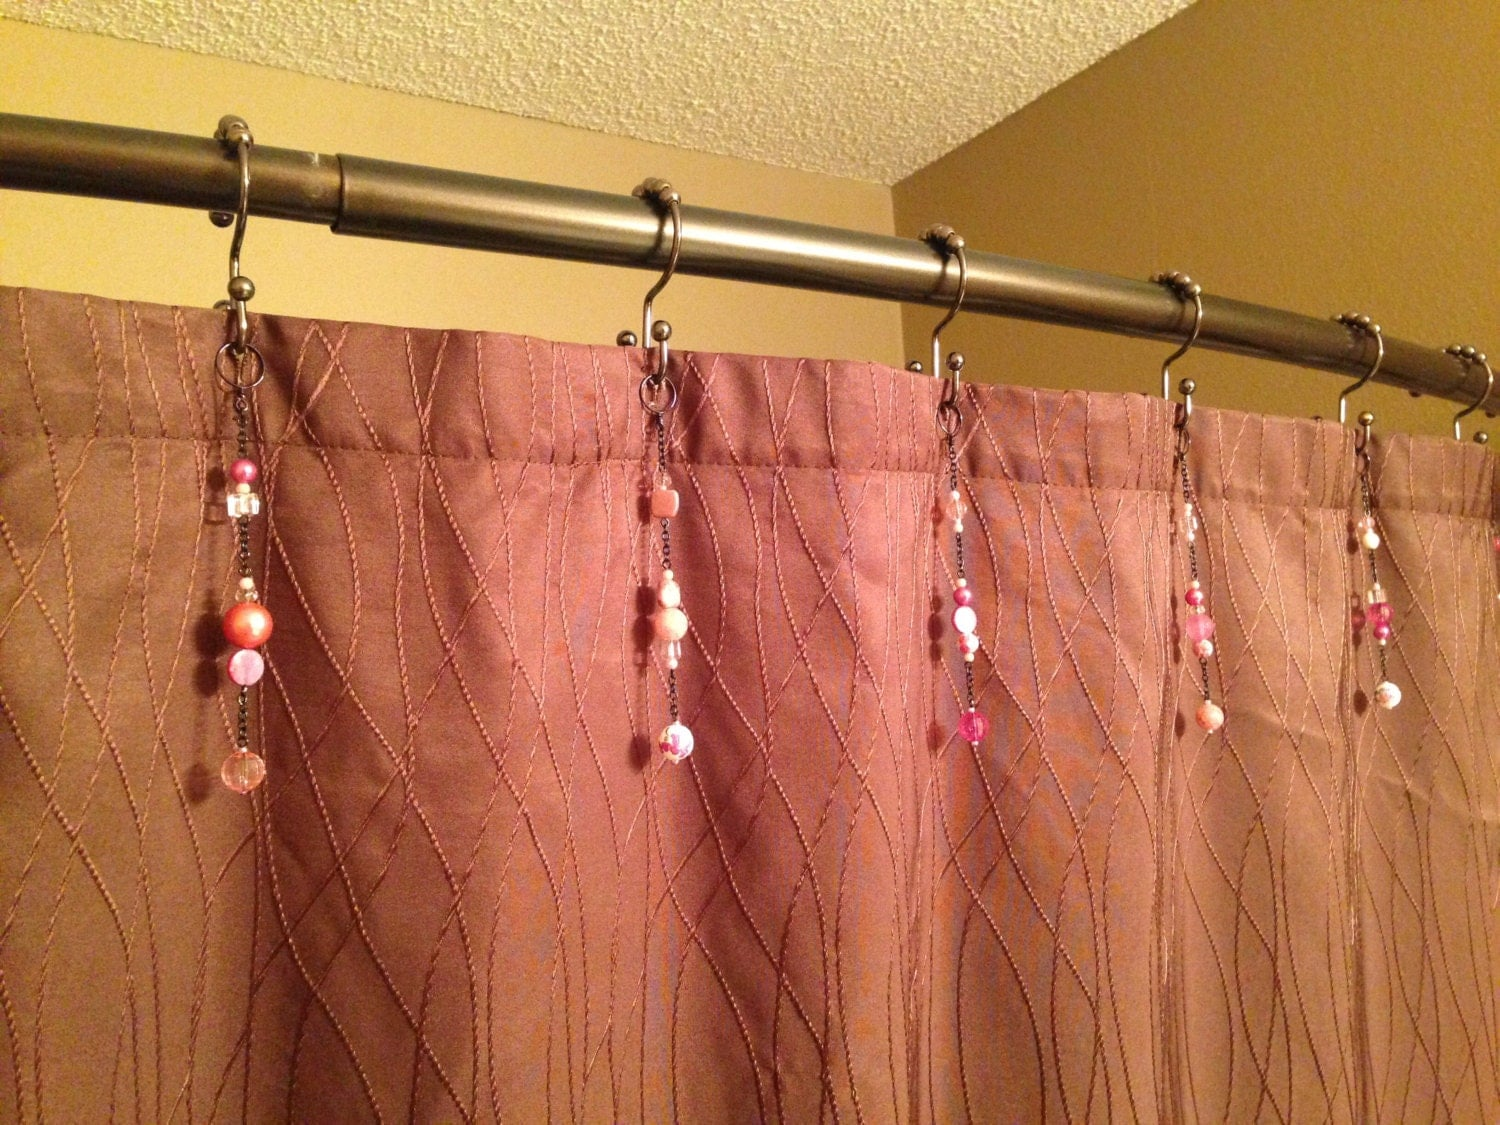 Pink Shower Curtain Hook Decoration With Black Chain For The